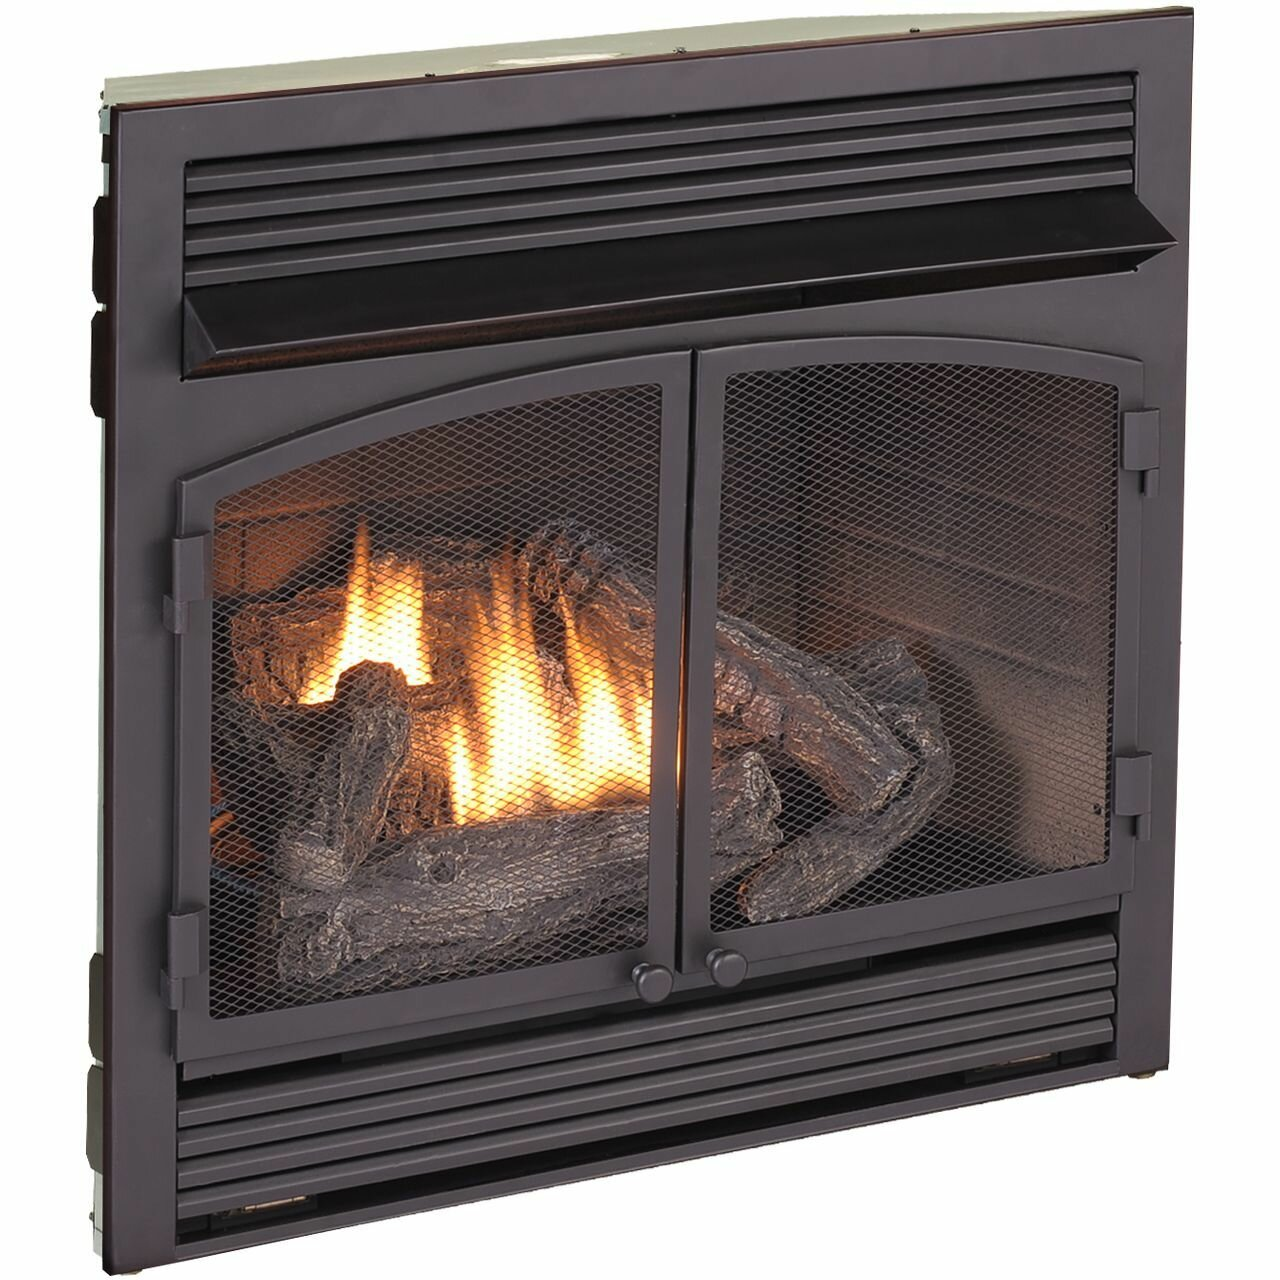 Duluth forge vent free recessed natural gas propane fireplace insert reviews wayfair